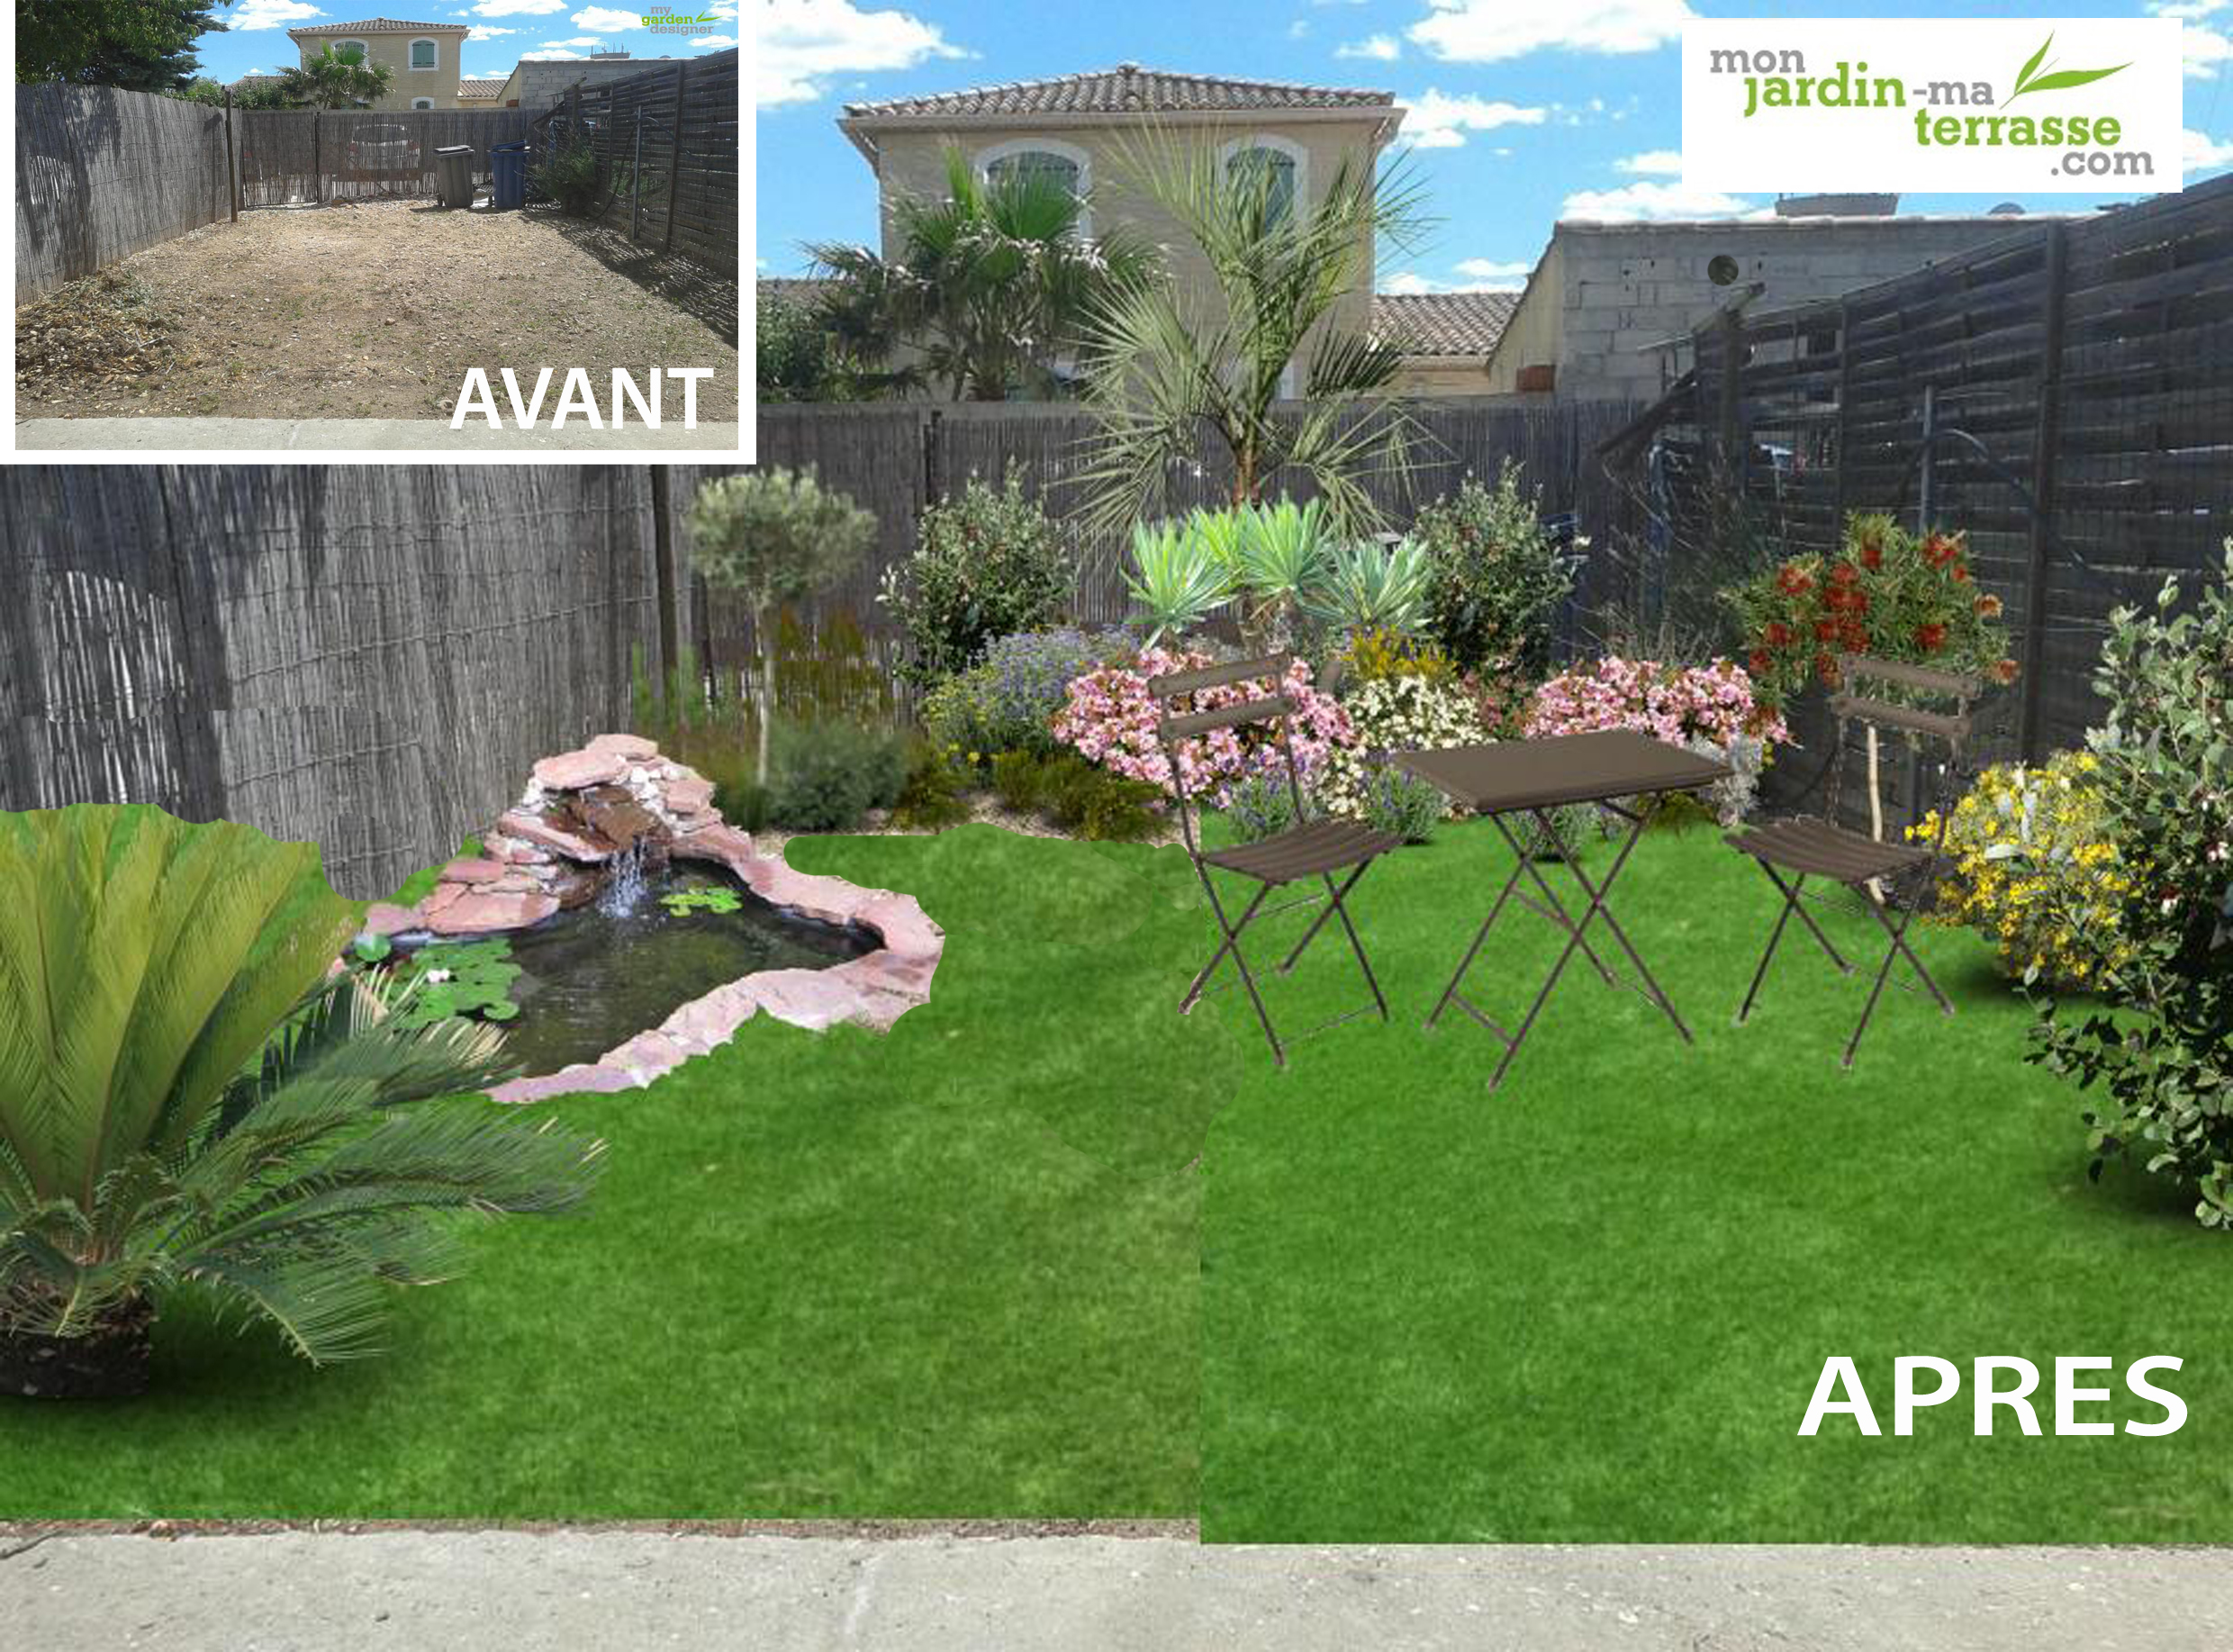 Id e d am nagement d un petit jardin monjardin for Amenagement jardin photos